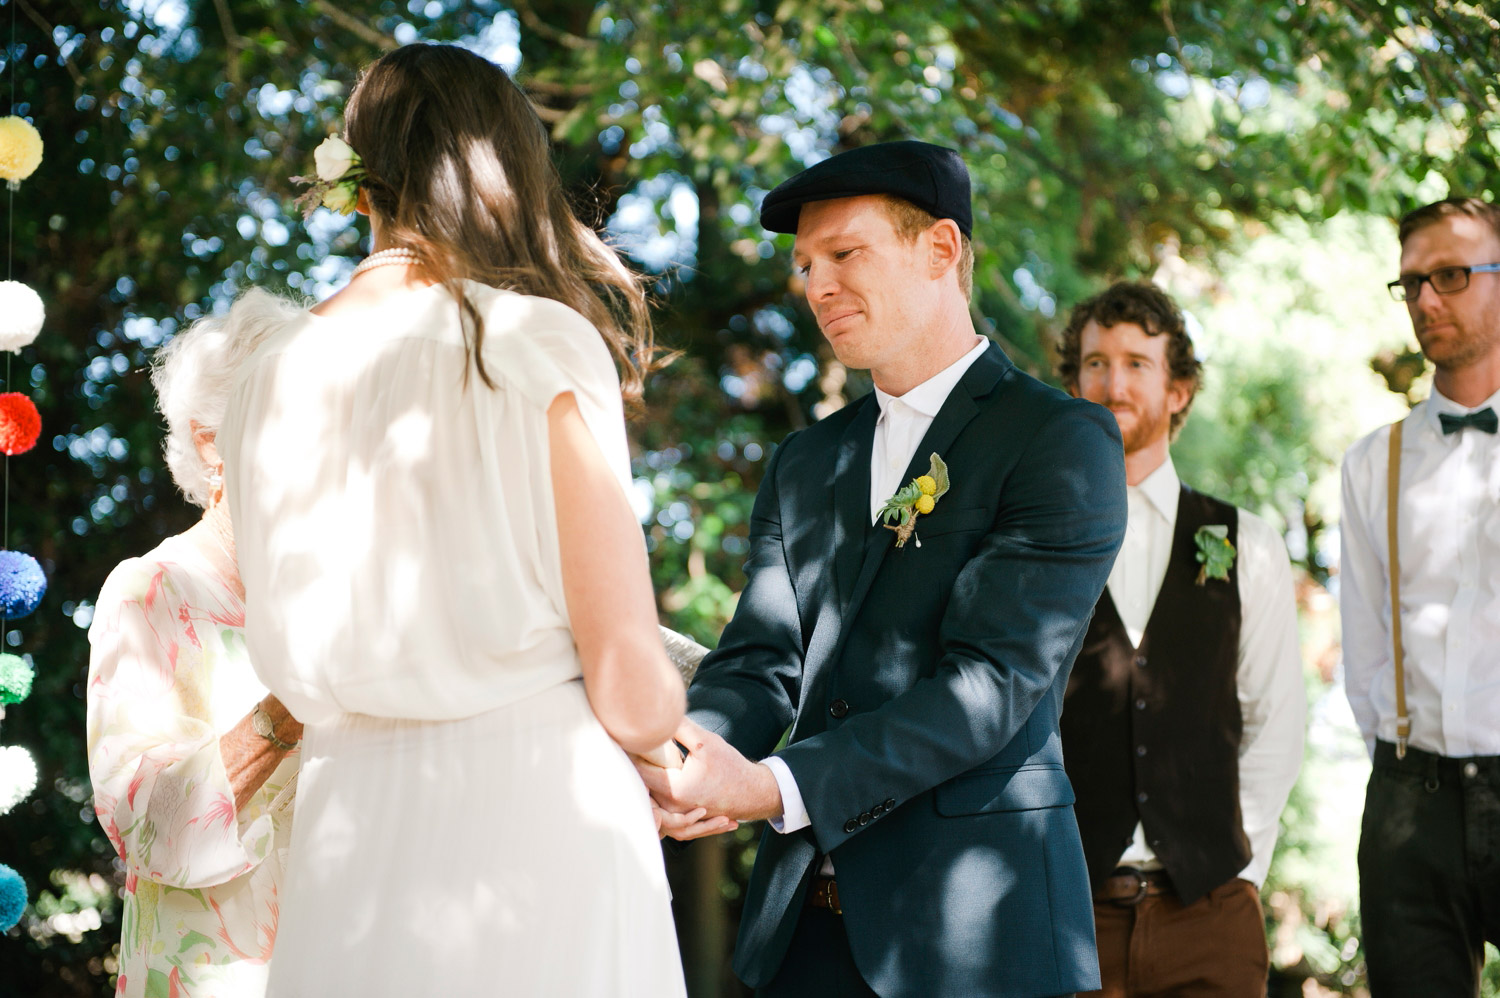 Katie_Mitchell_Photography_New_Zealand_Wedding_AJ_10.jpg